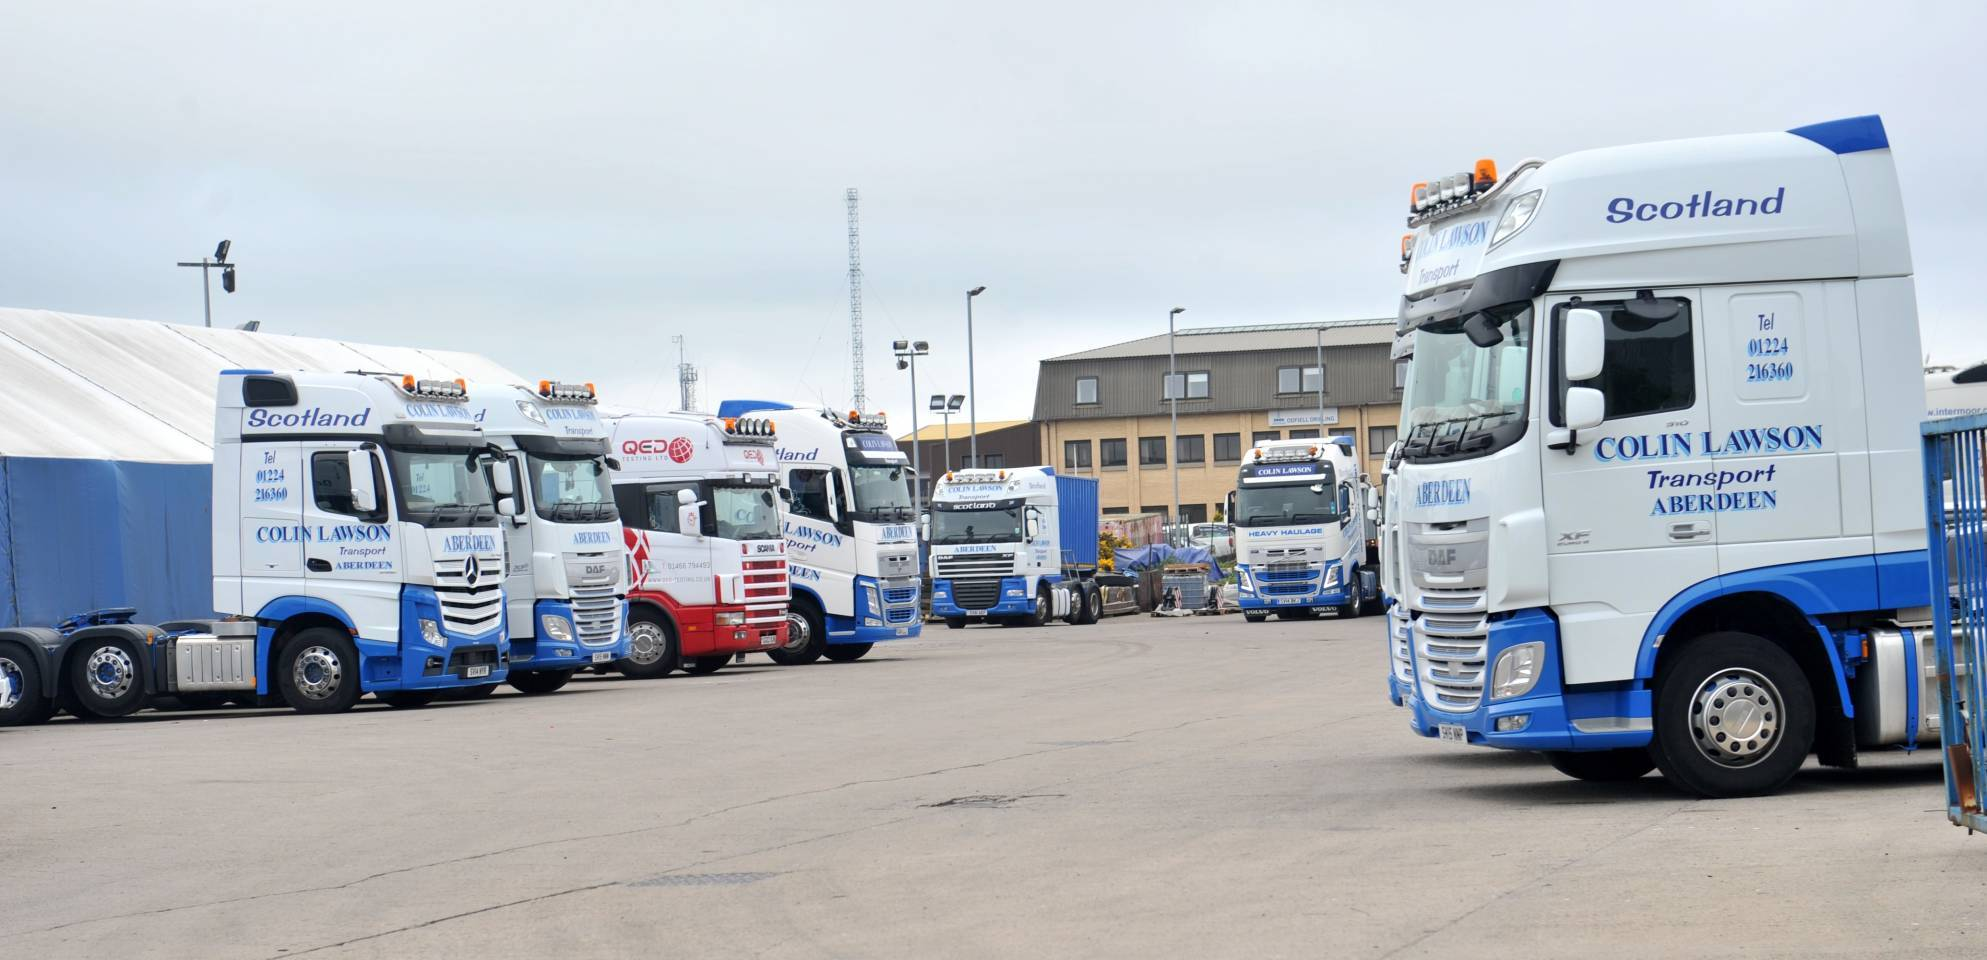 The incident happened at Colin Lawson Transport at Hareness Park.